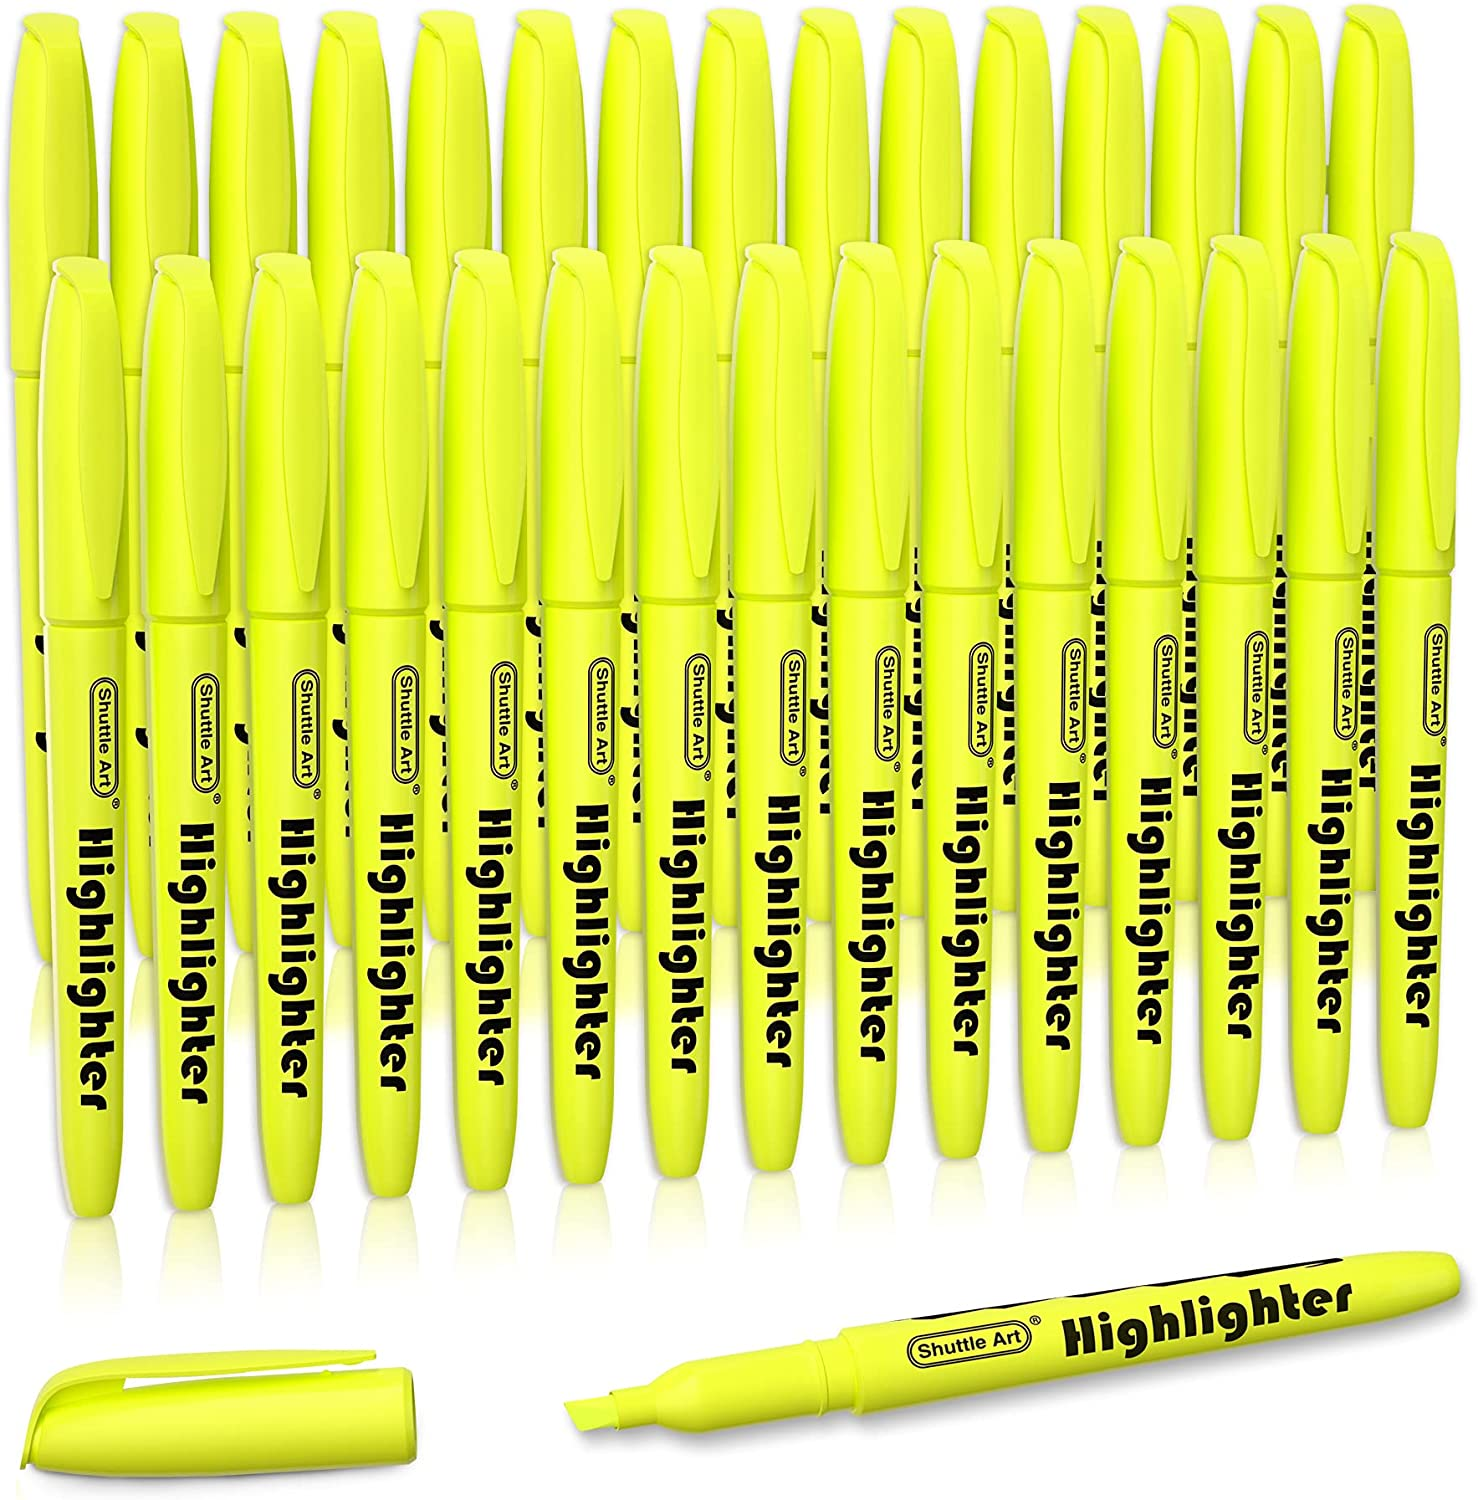 Yellow Highlighters Shuttle Art Bright Max Ranking TOP3 87% OFF Pack Col 30